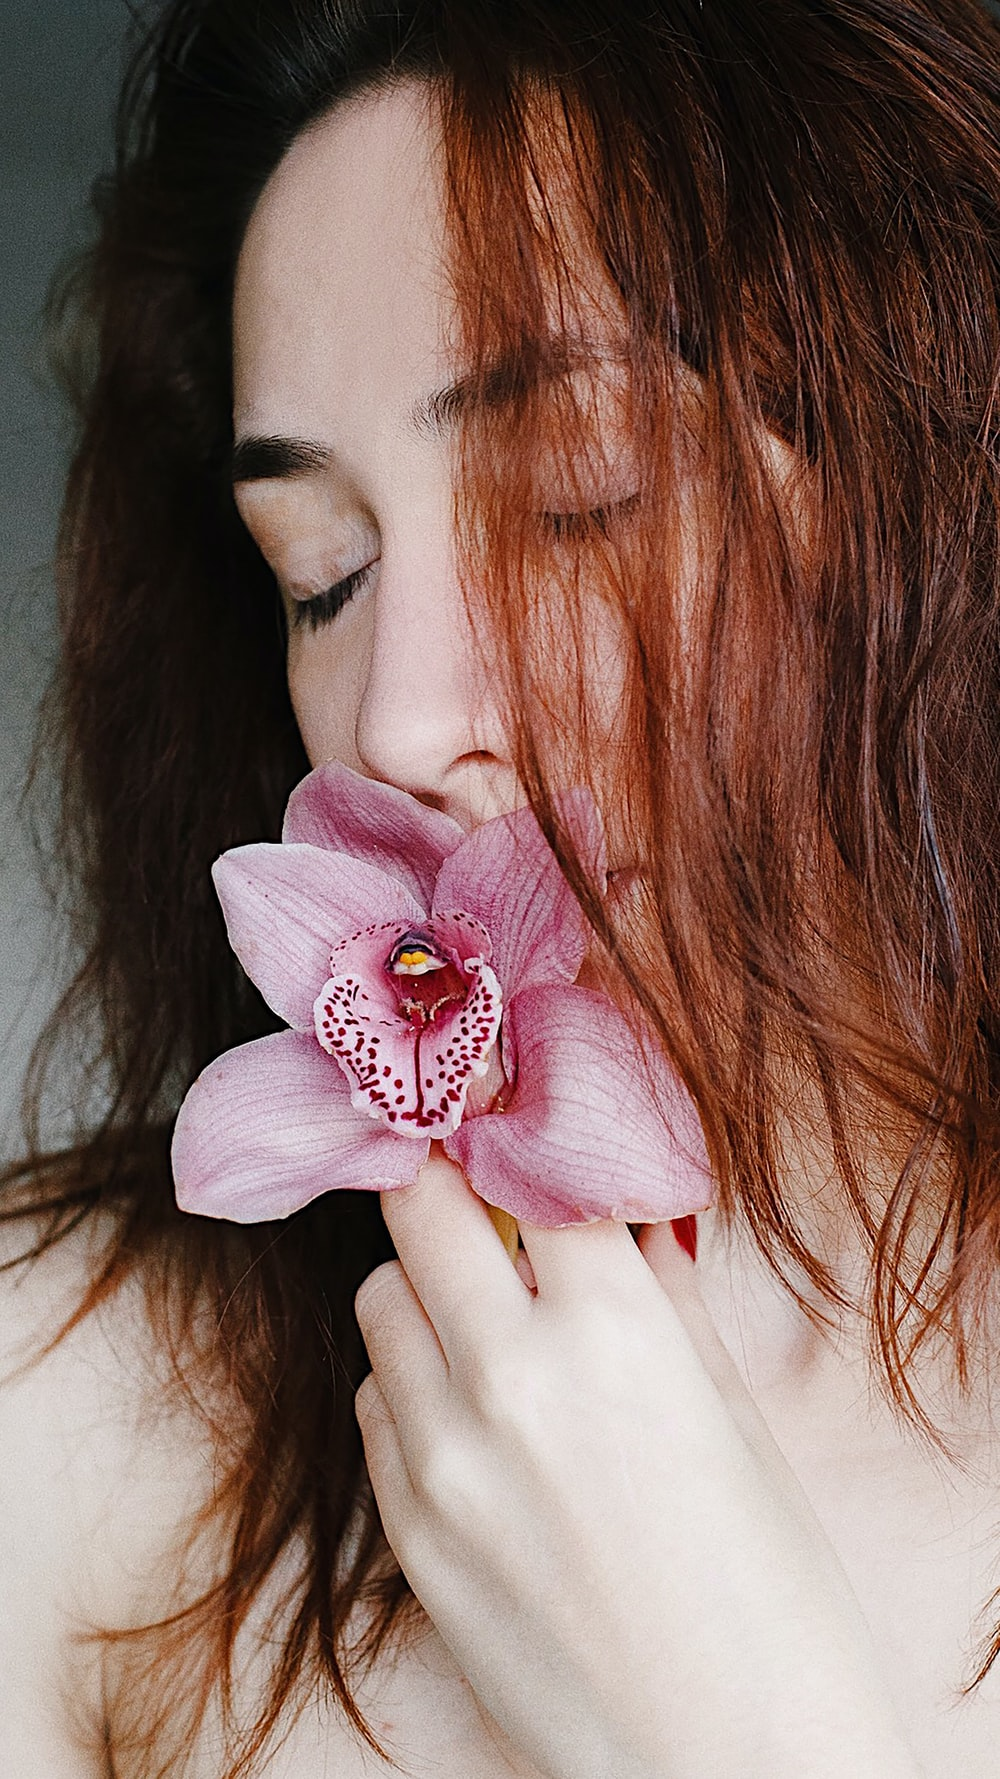 woman with pink flower on her ear